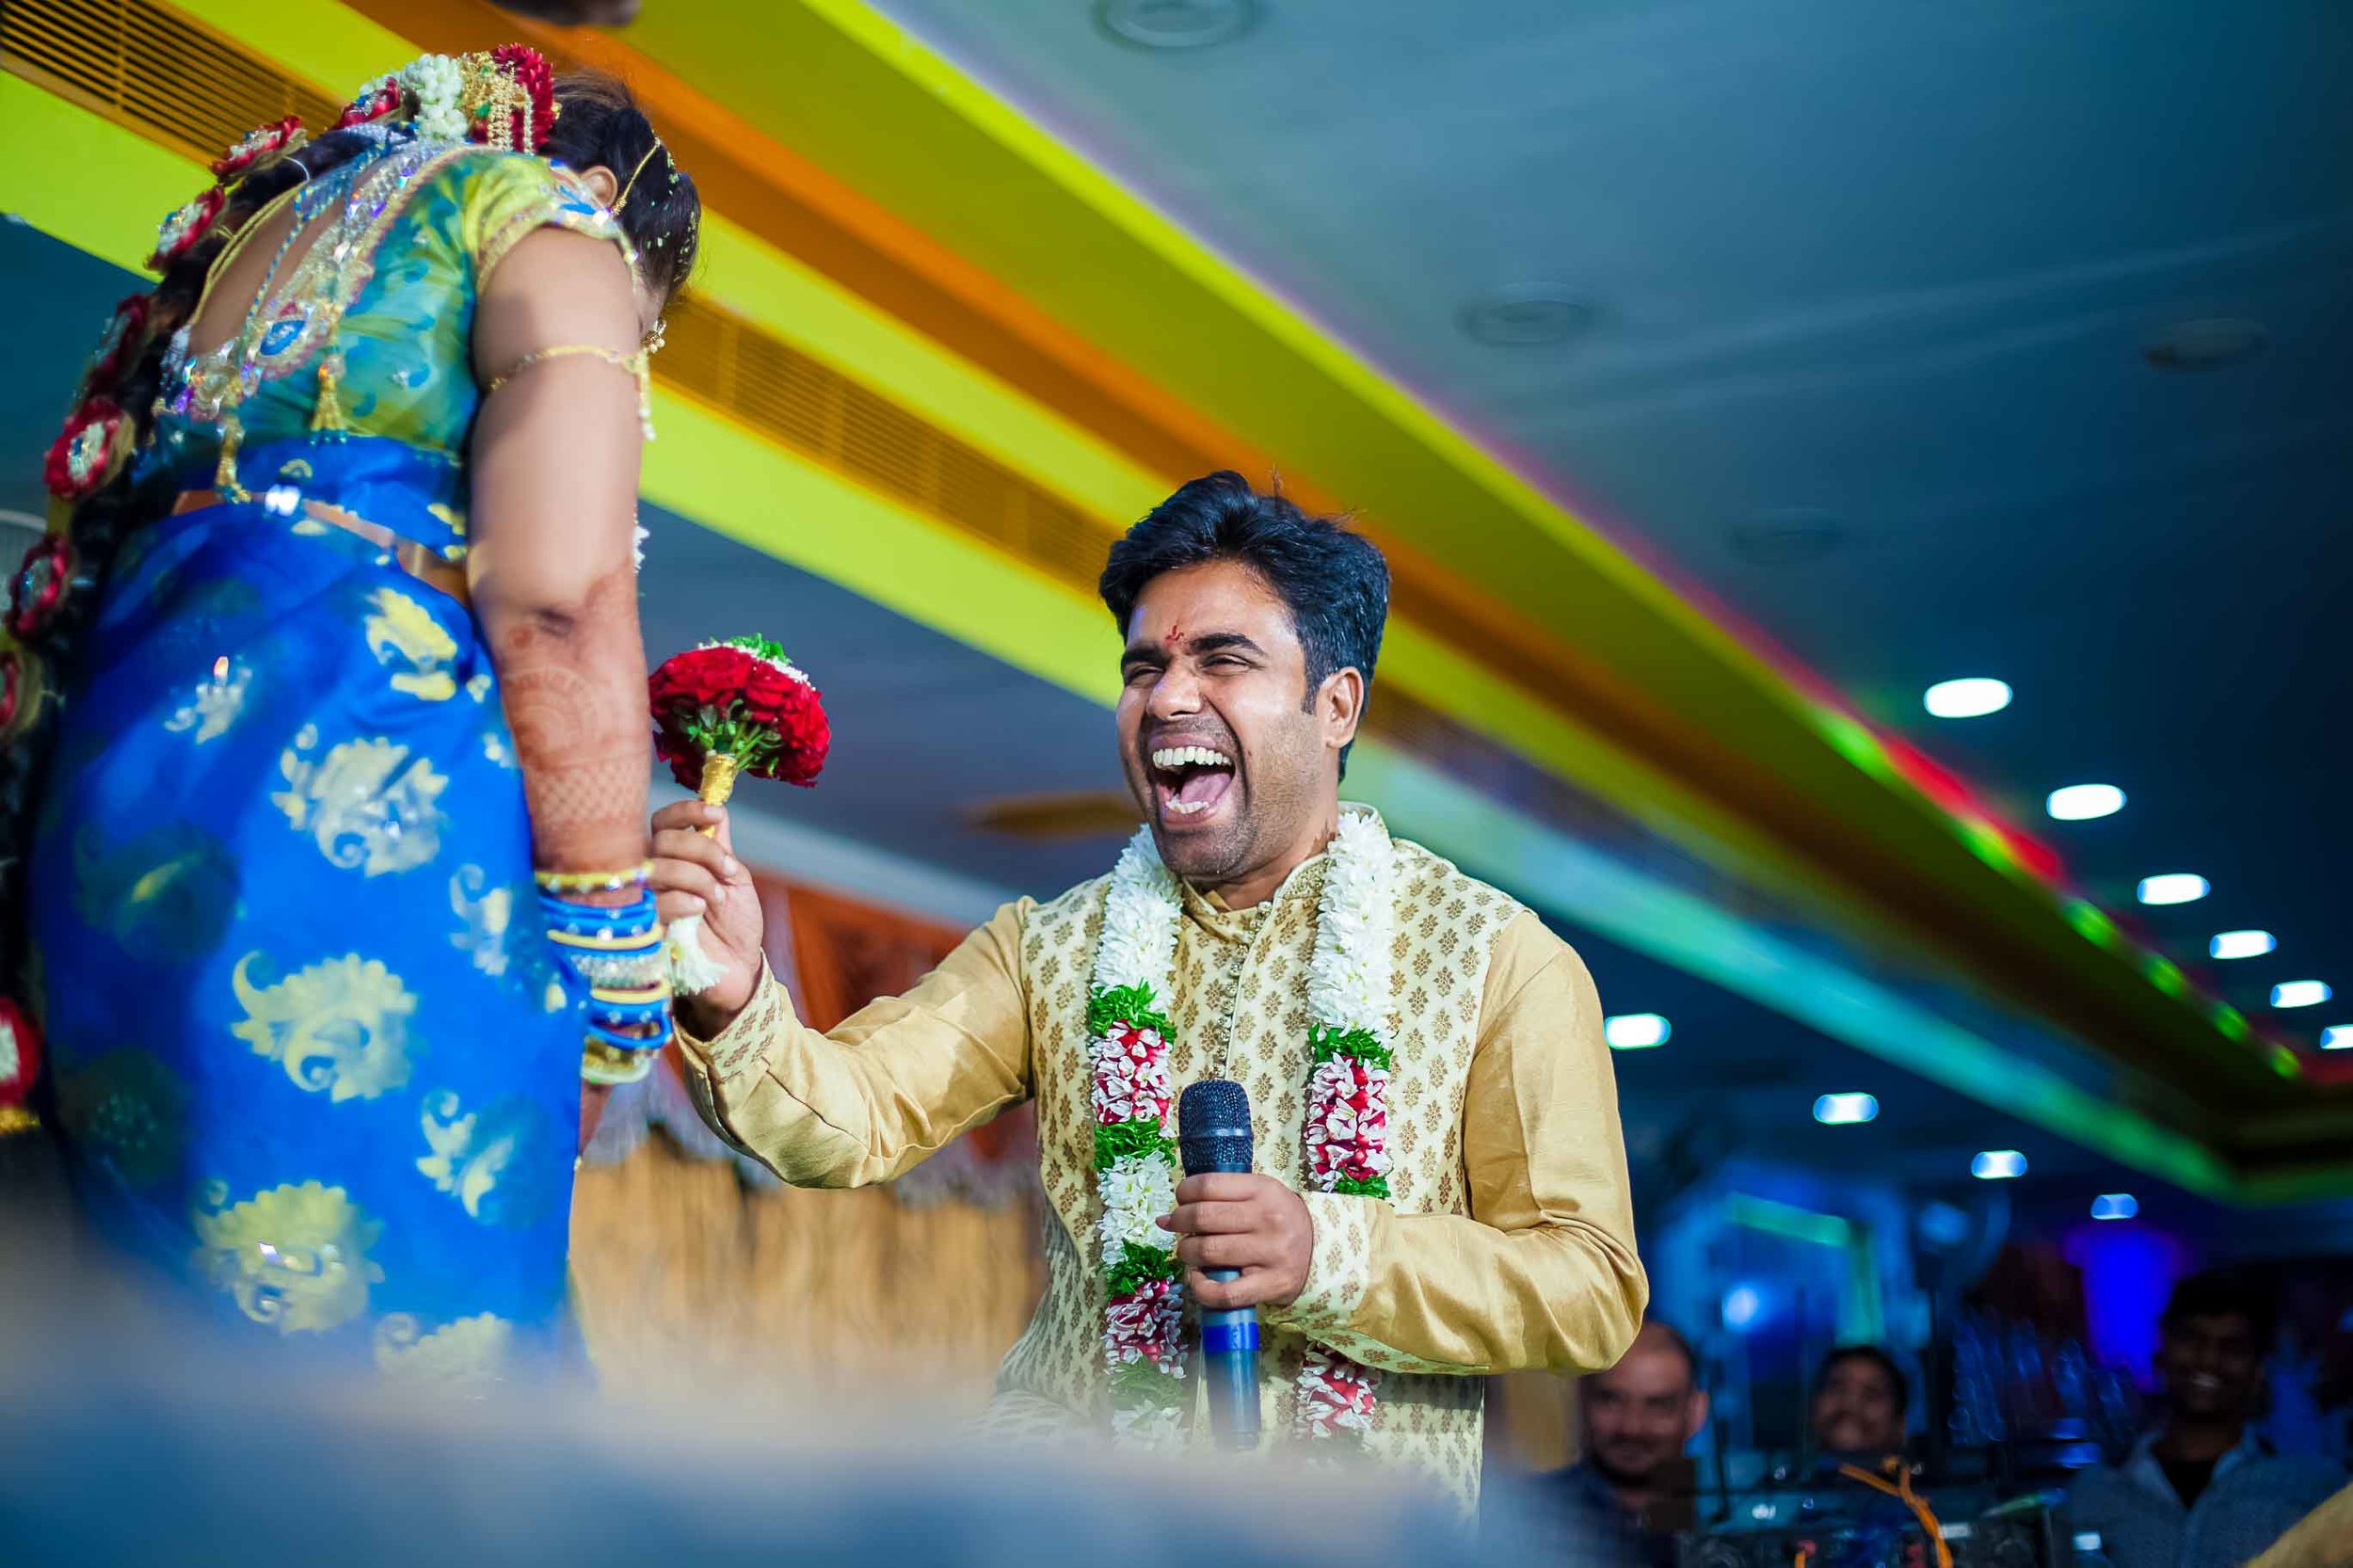 Pixel-Chronicles-Alekhya-Chaitanya-Nellore-Candid-Wedding-Bride-Groom-Dance-10.jpg